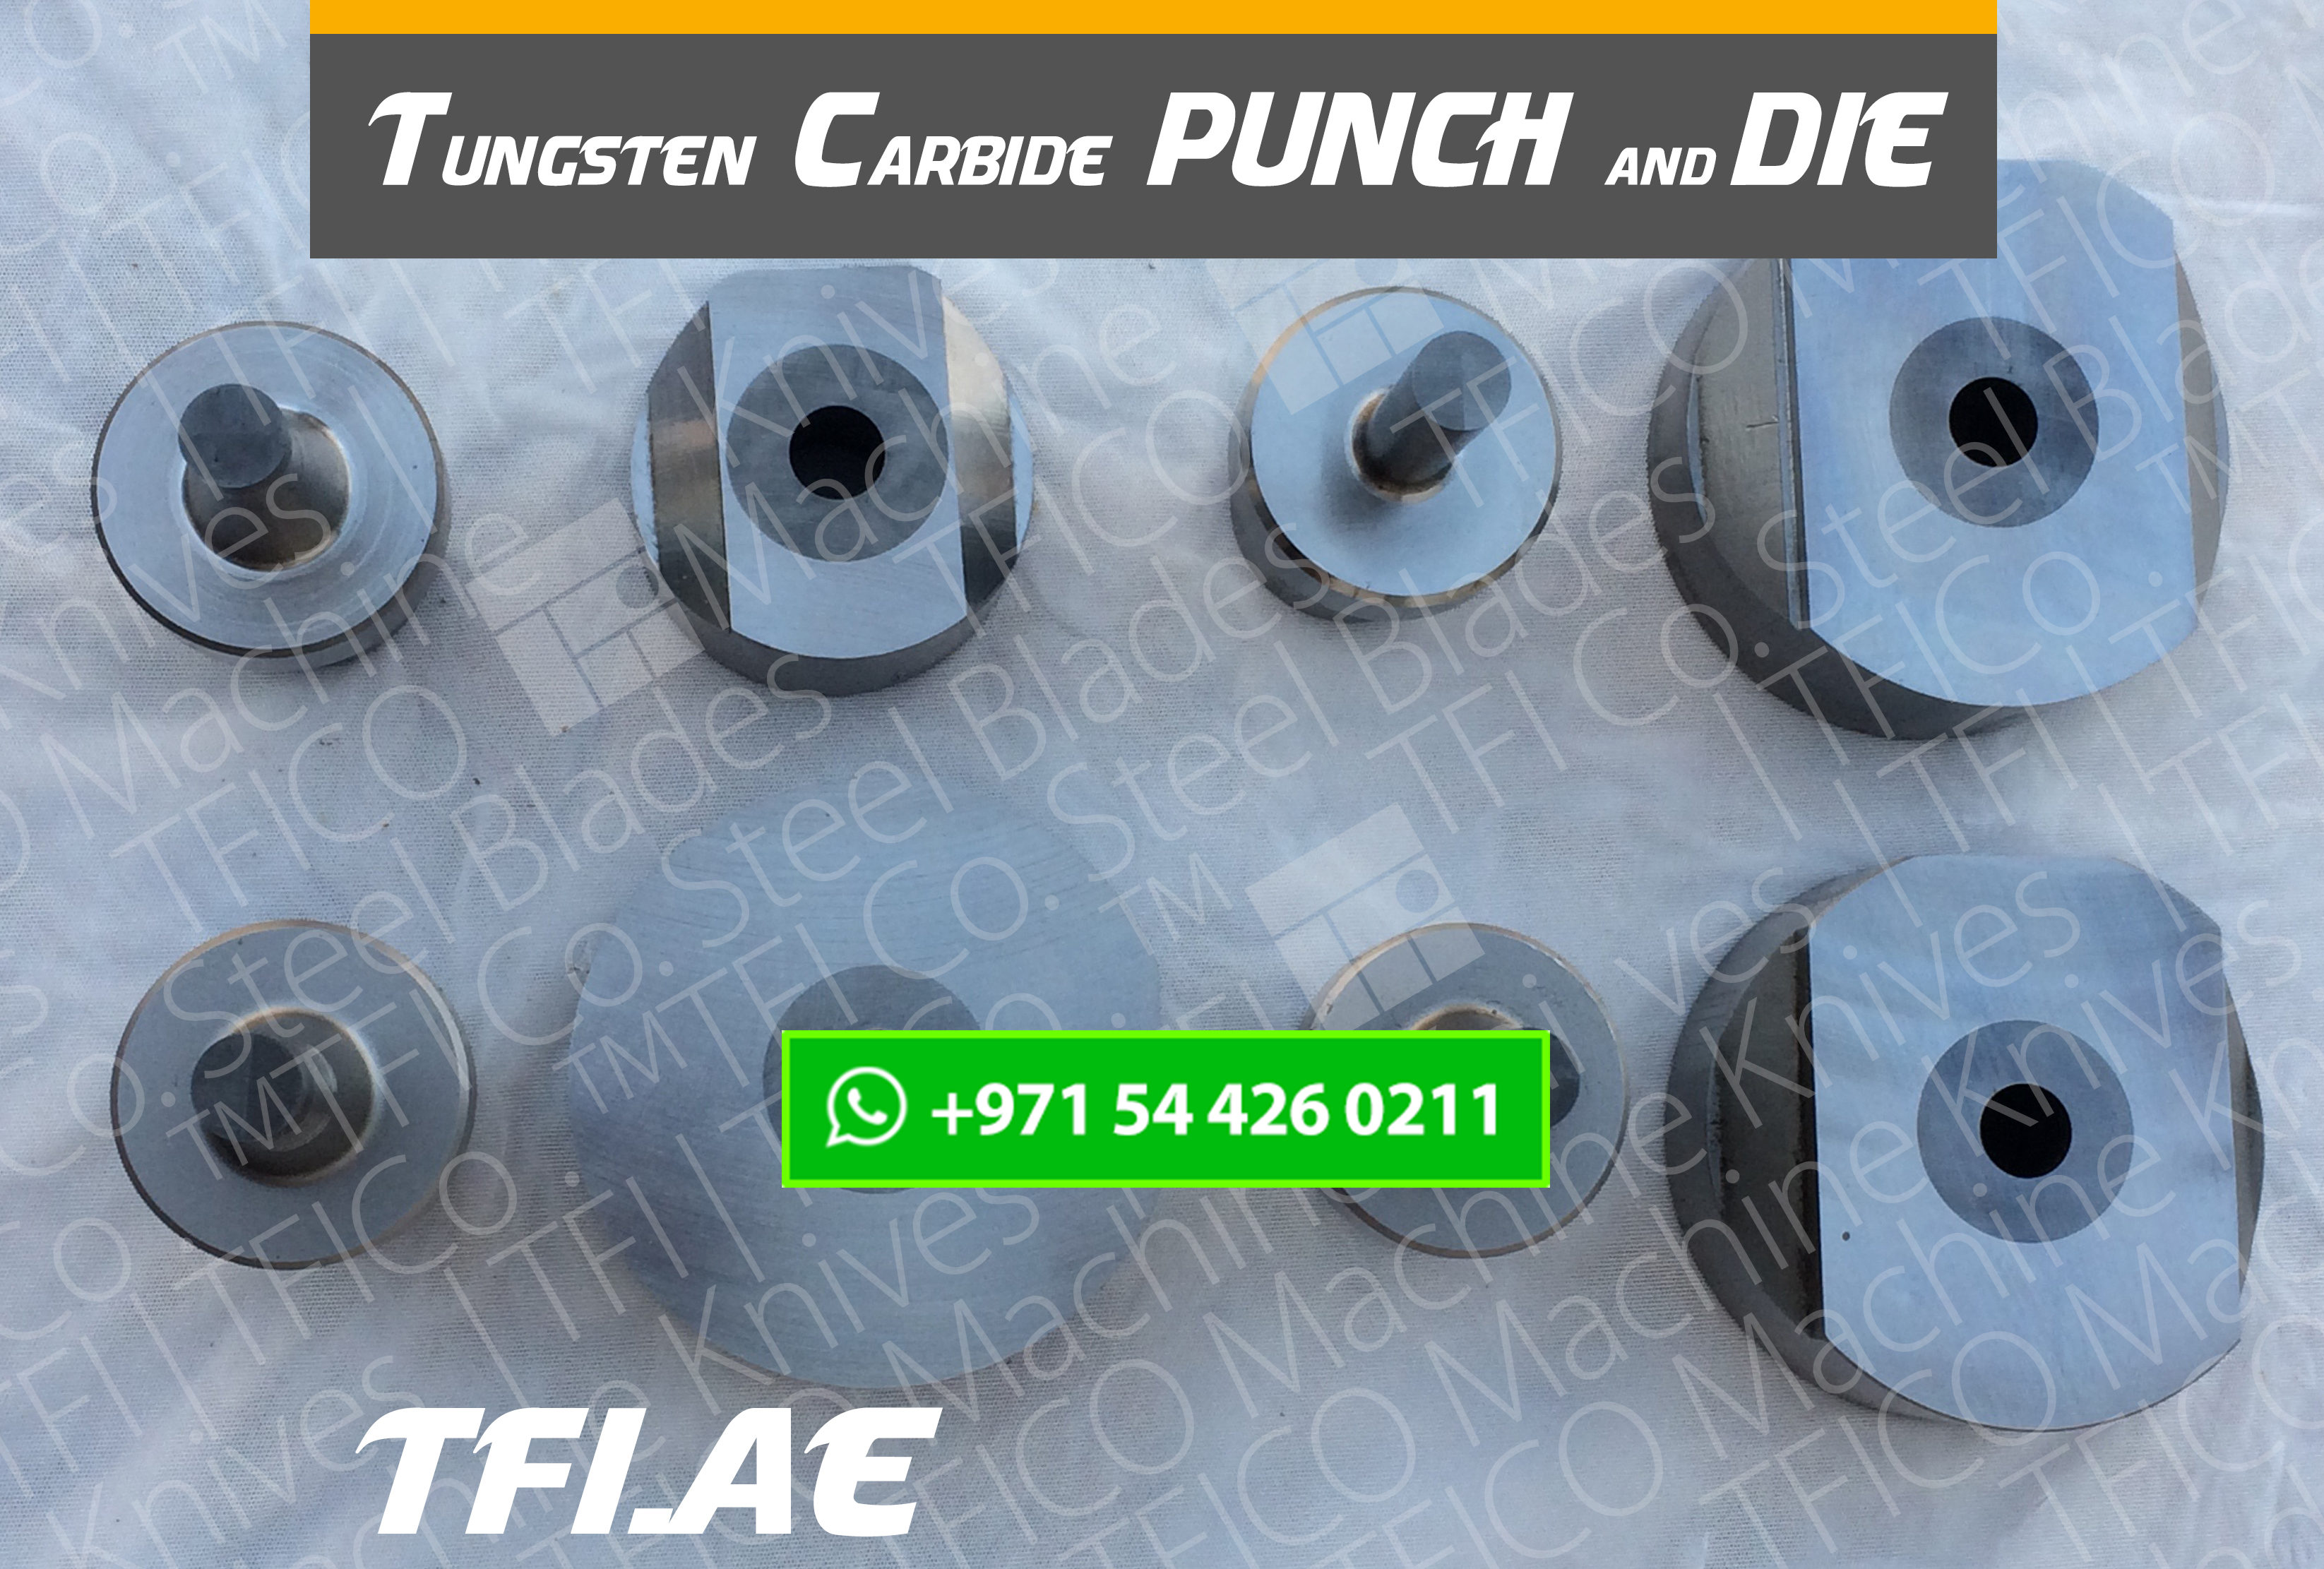 tungsten carbide, dubai, uae, abu dhabi , punch, die, ras al khaimah, transformer, ring, tfico, sharpening , grinding, machine, knives,